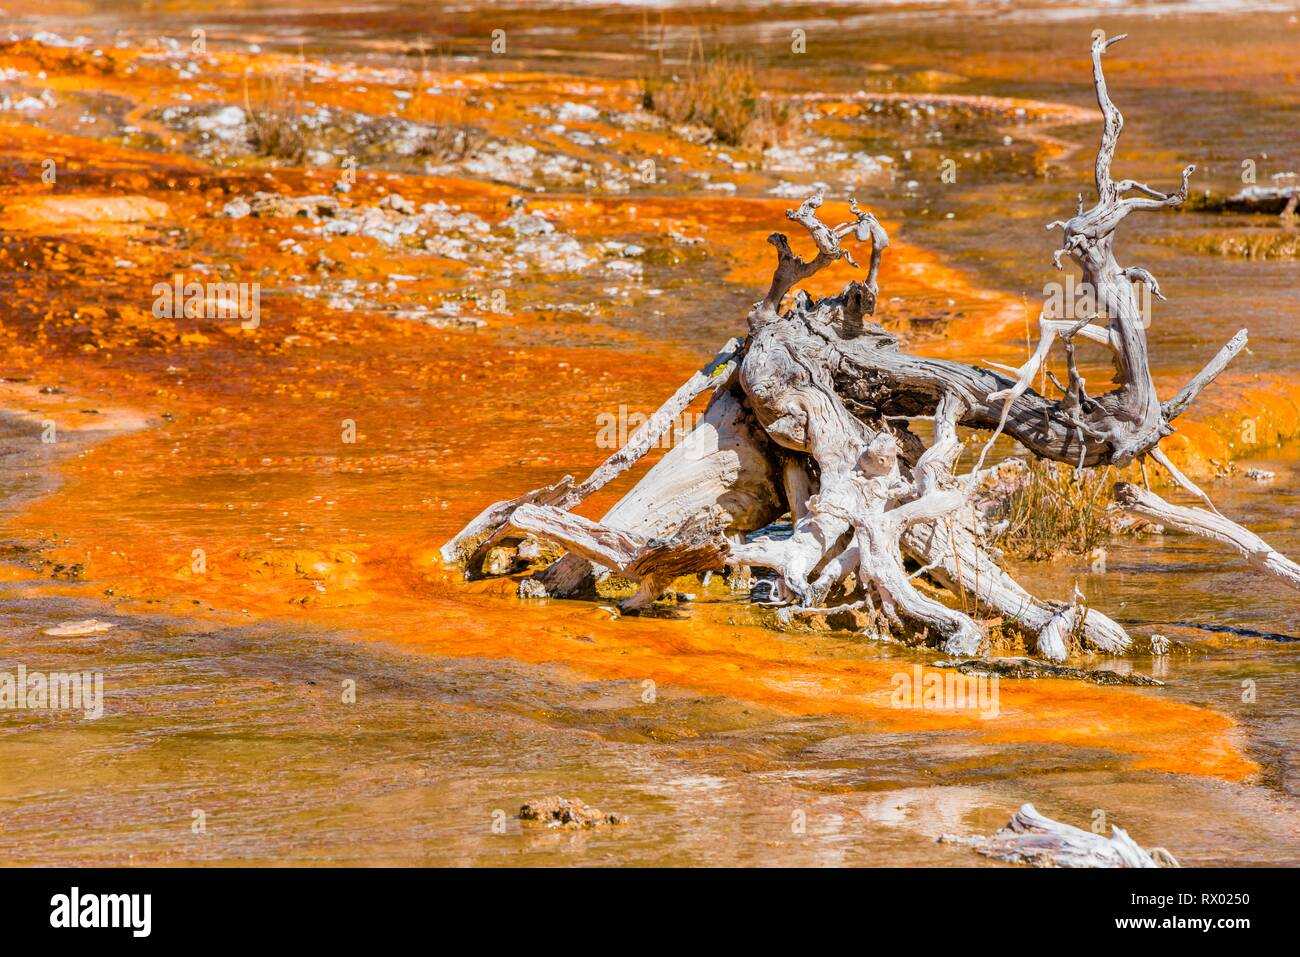 Gnarled tree root on yellow bacteria in a hot spring, Black Sand Basin, Yellowstone National Park, Wyoming, USA - Stock Image